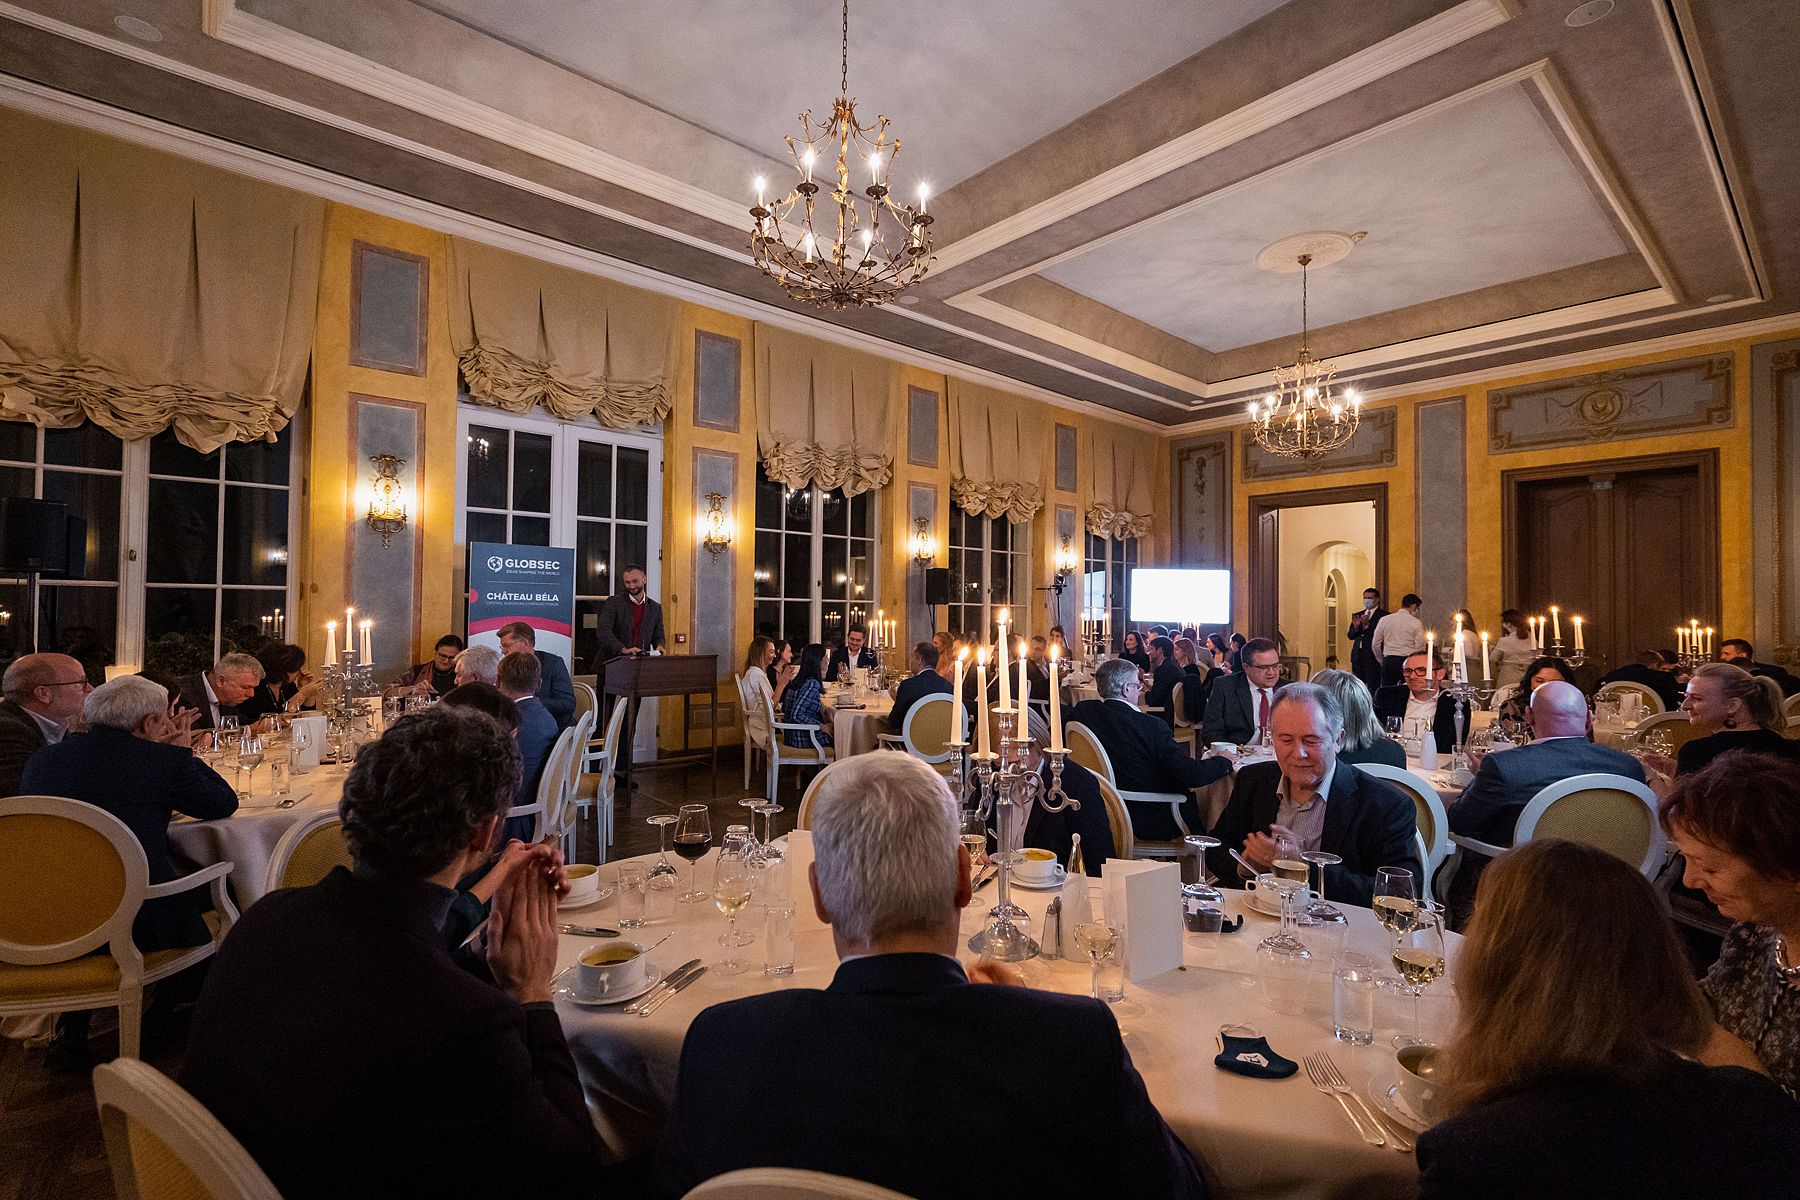 Chateau Bela is one of the top strategic forums in Europe